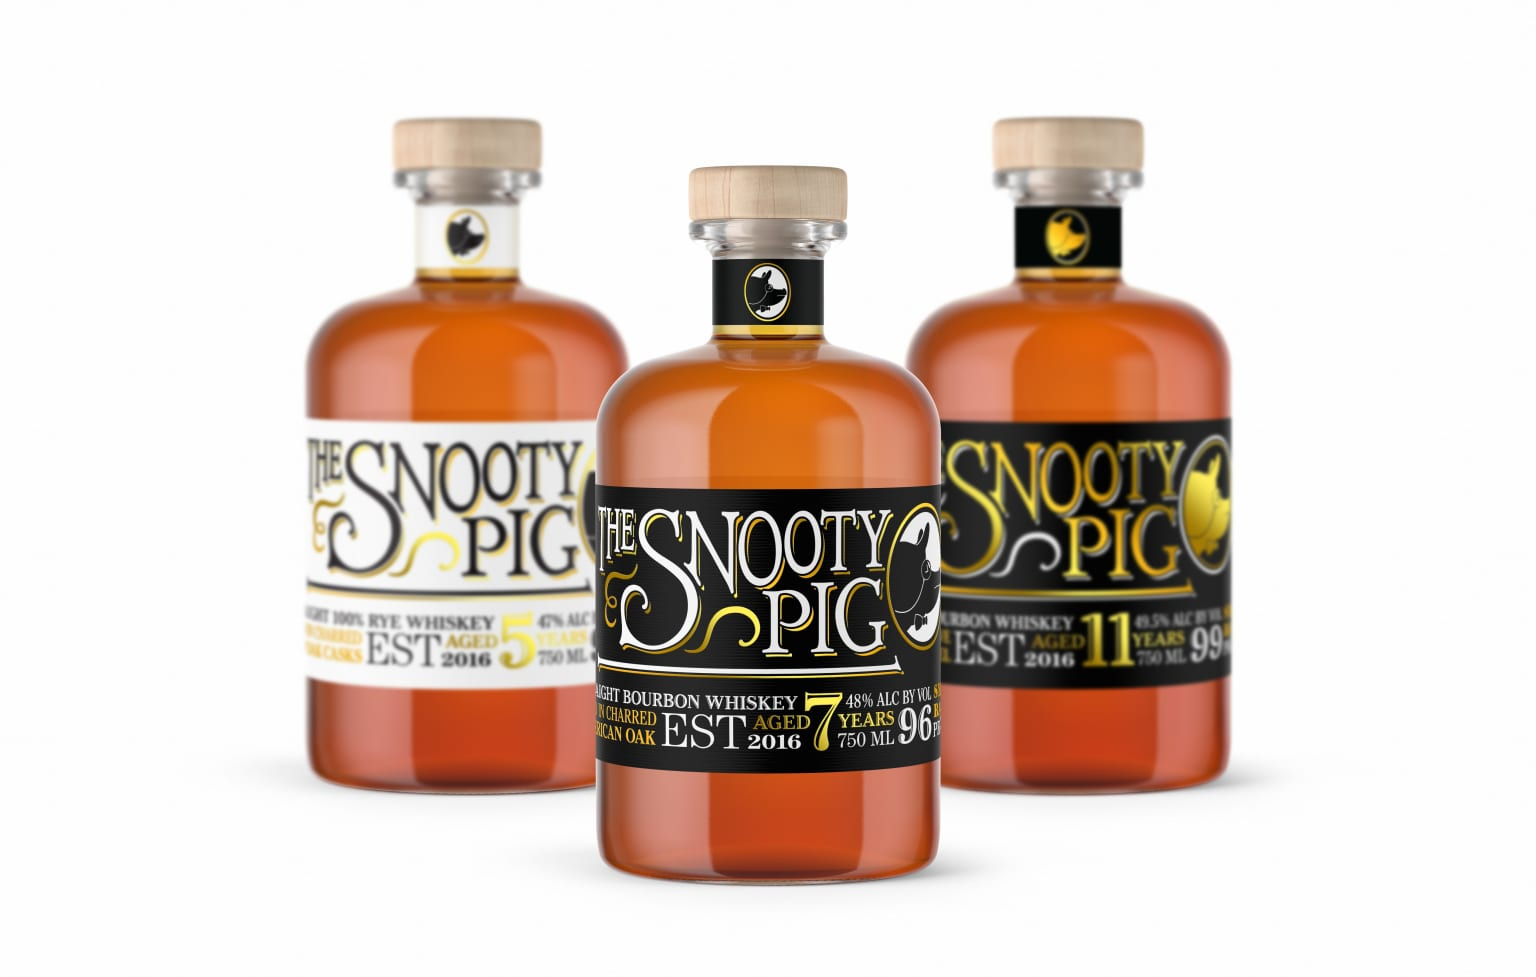 The Snooty Pig whiskey: Brand Identity   Package Design